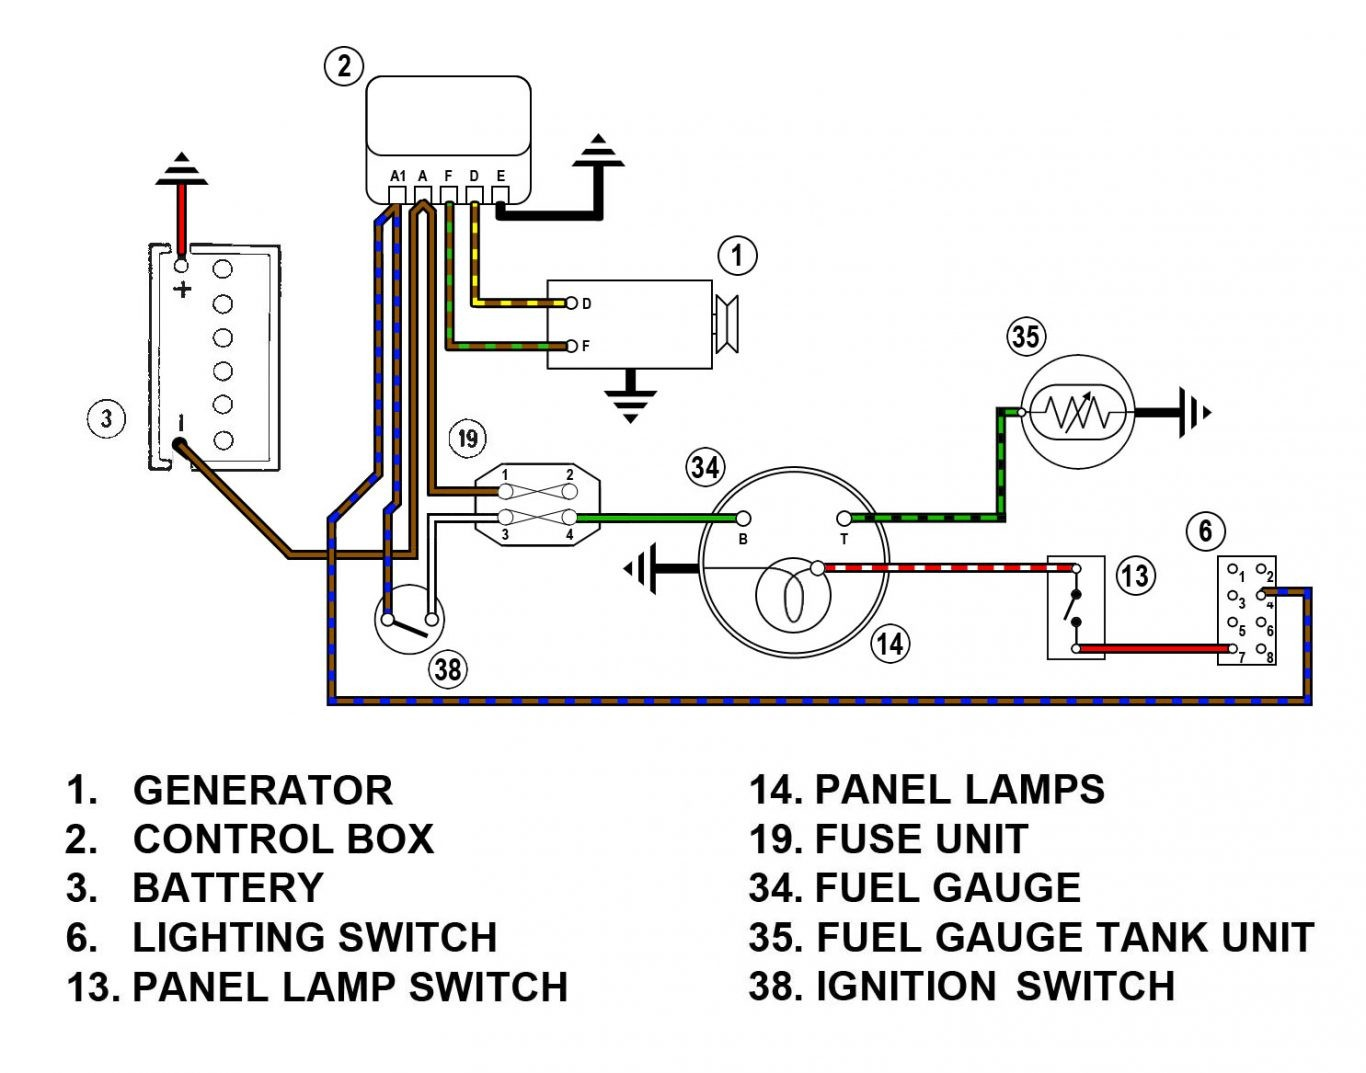 vdo oil pressure sender wiring diagram free download wiring diagram rh abetter pw